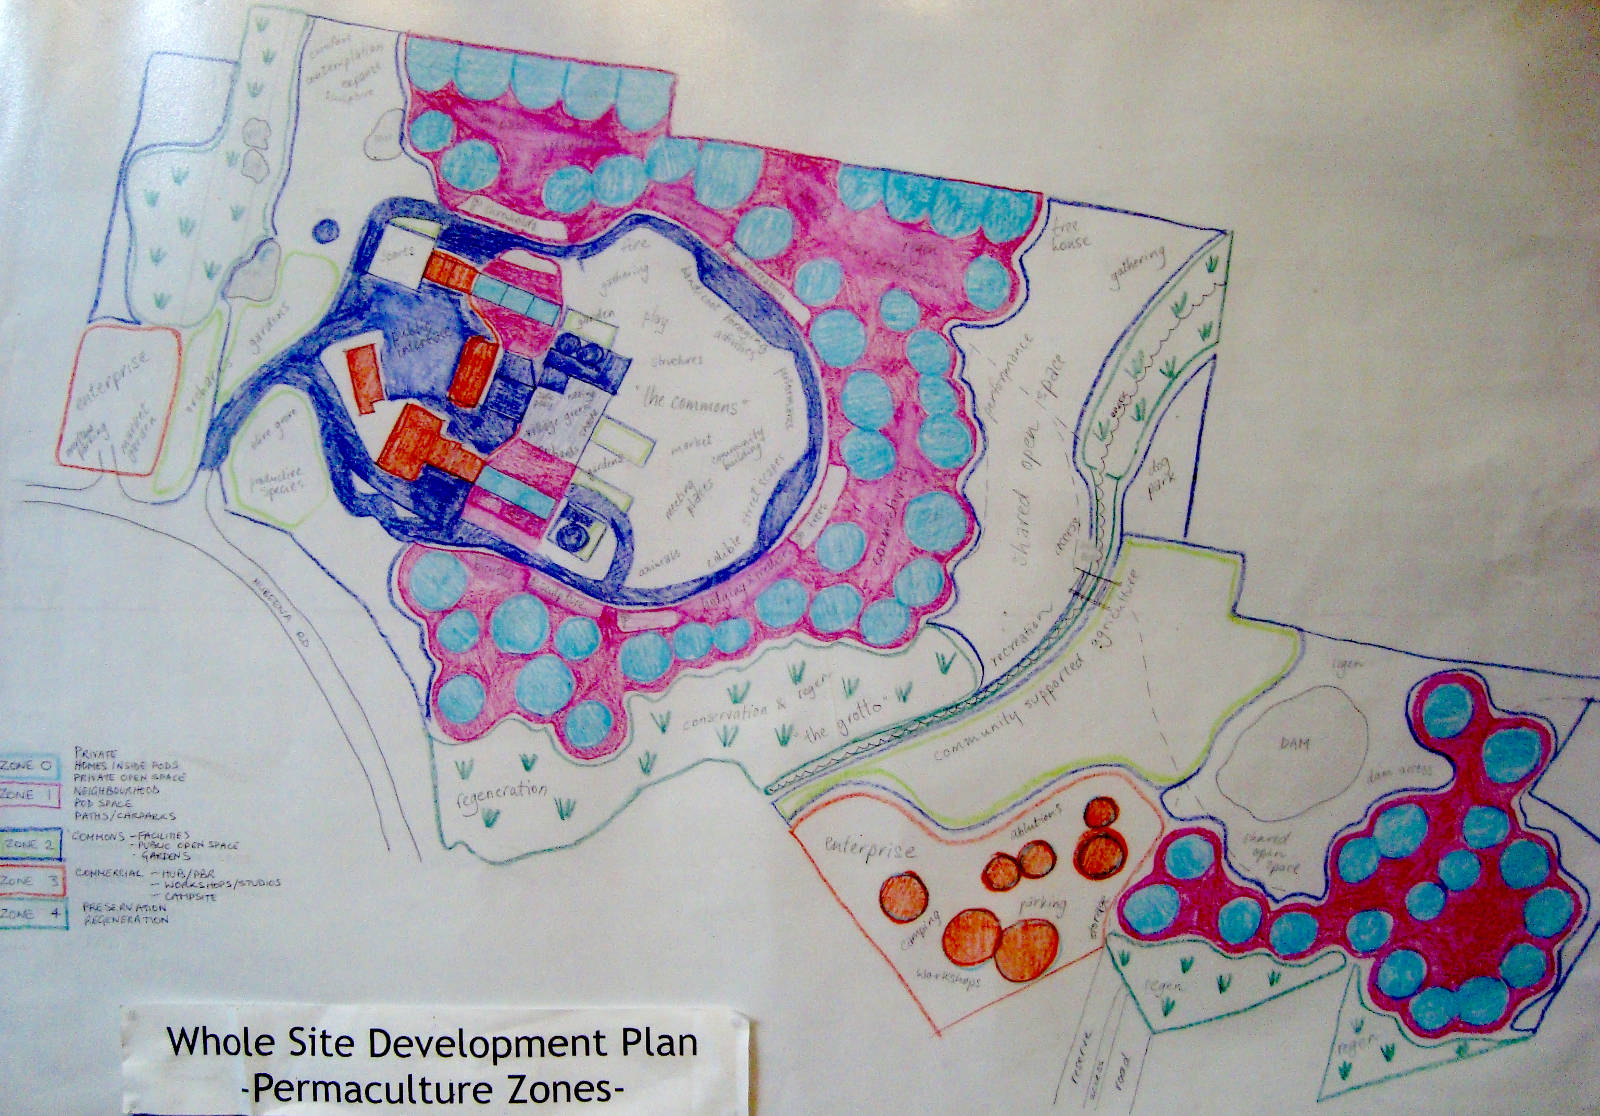 Whole Site Development Plan